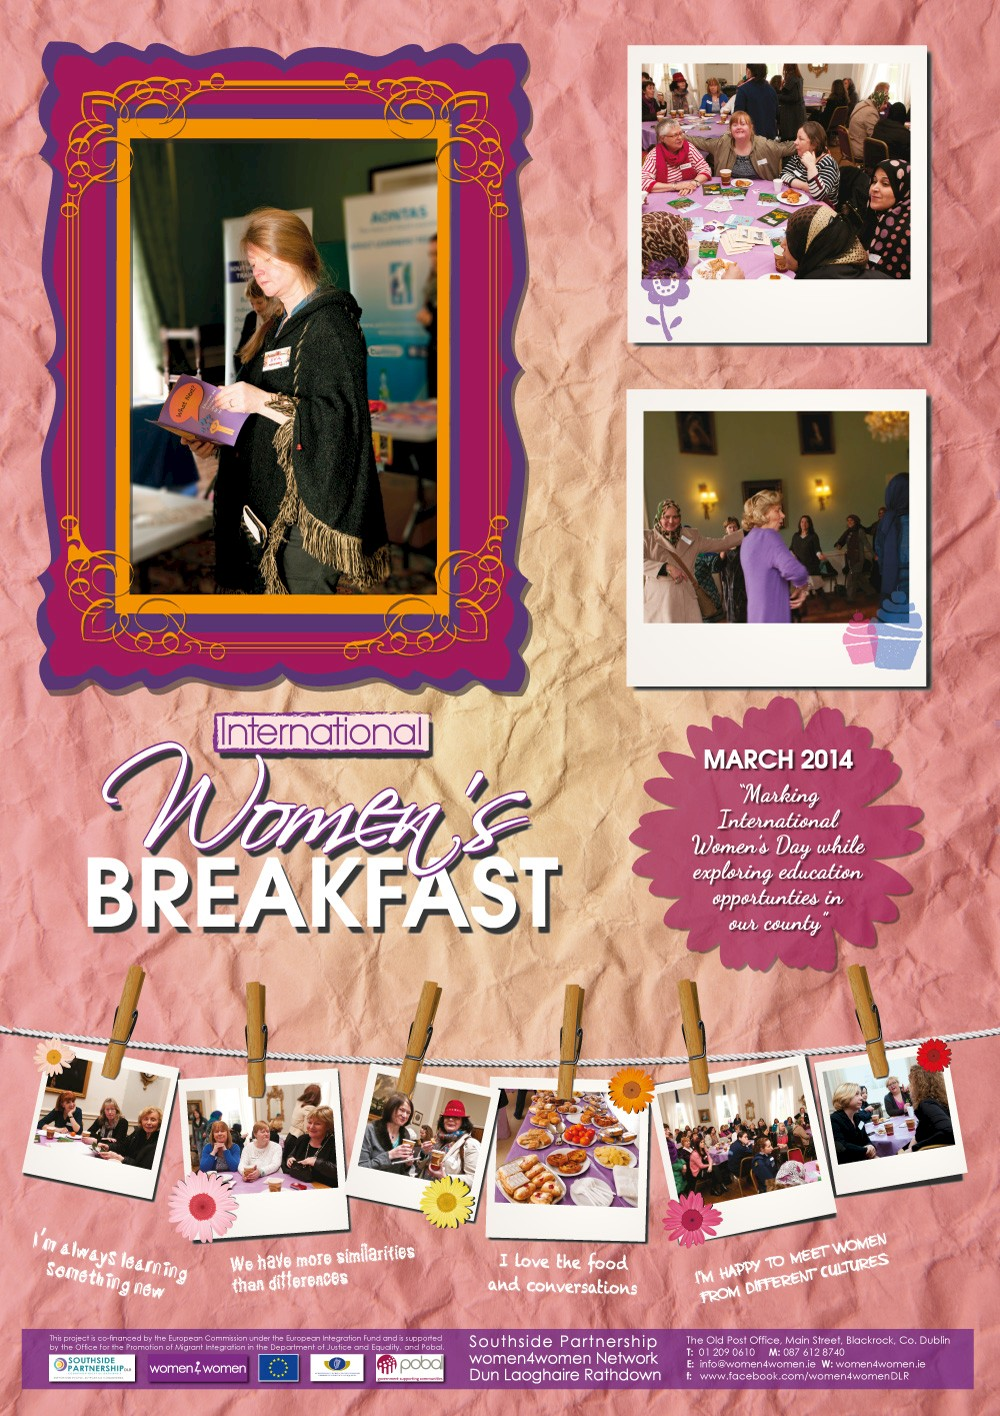 W4W-Breakfast-Poster-MarleyMarch'14-DRAFT2